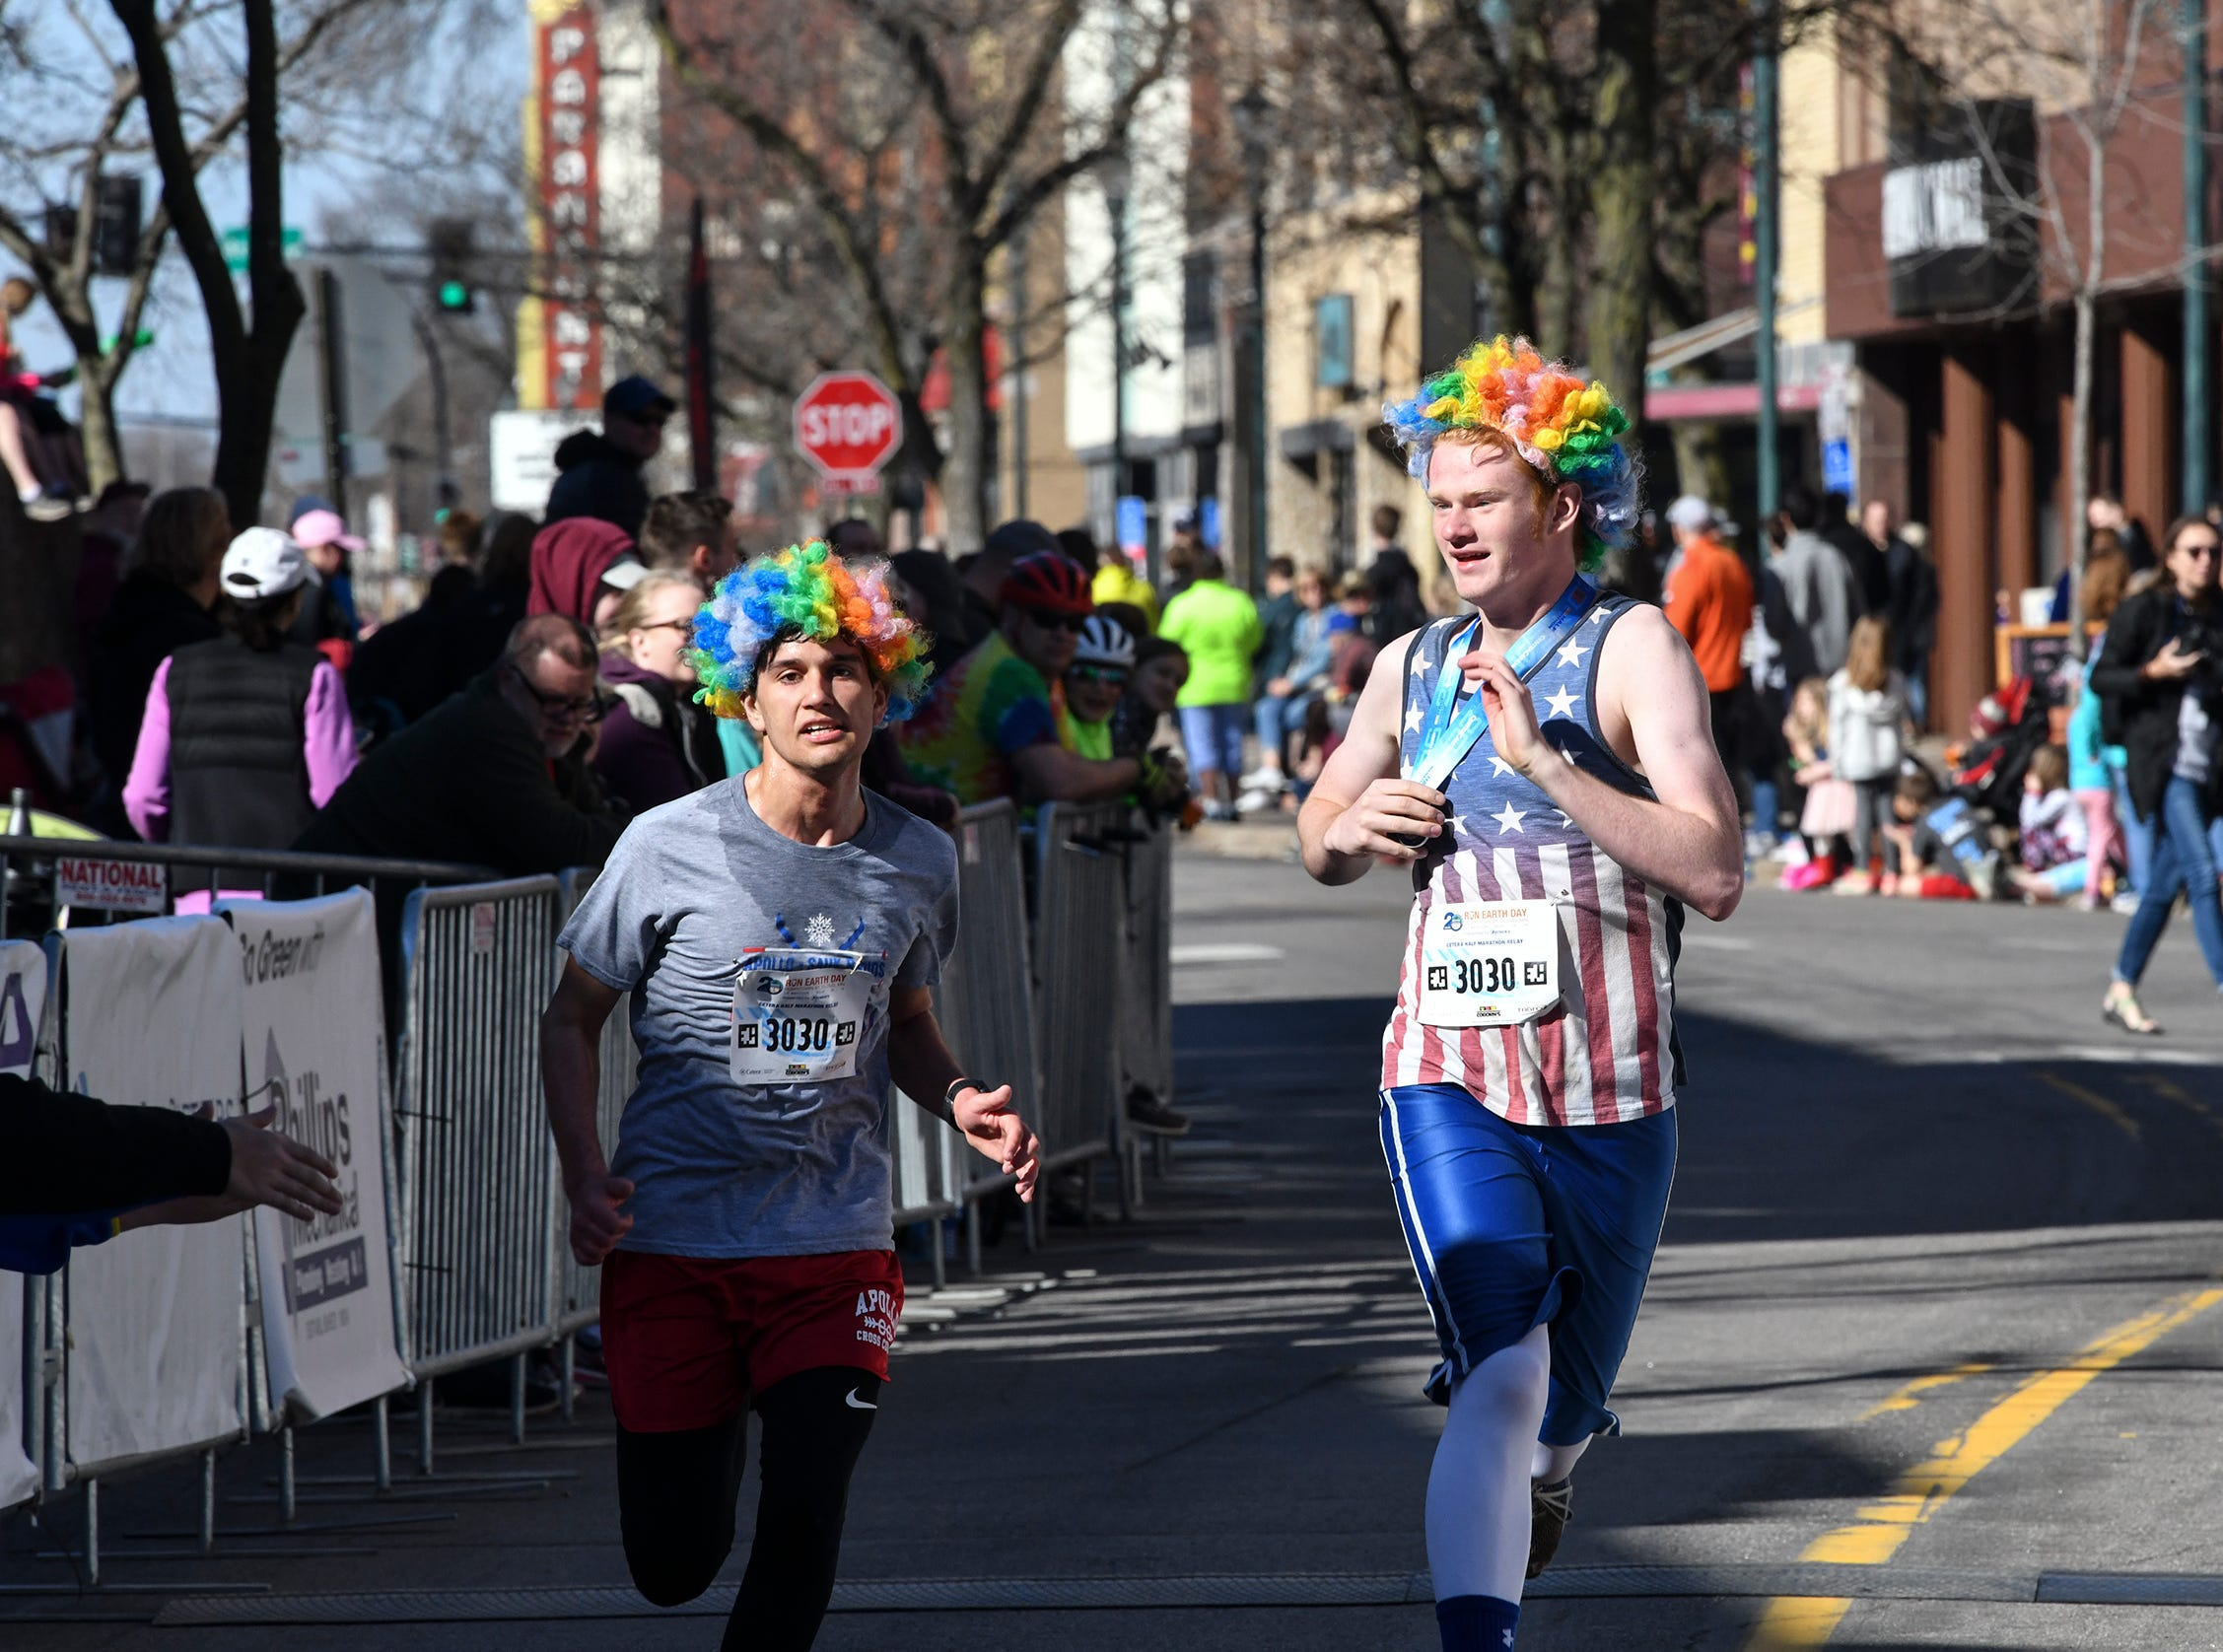 Sam Brewer and Ethan Logeman approach the finish line during the Cetera Half Marathon as part of CentraCare Health Earth Day Run activities Saturday, April 20, in downtown St. Cloud.